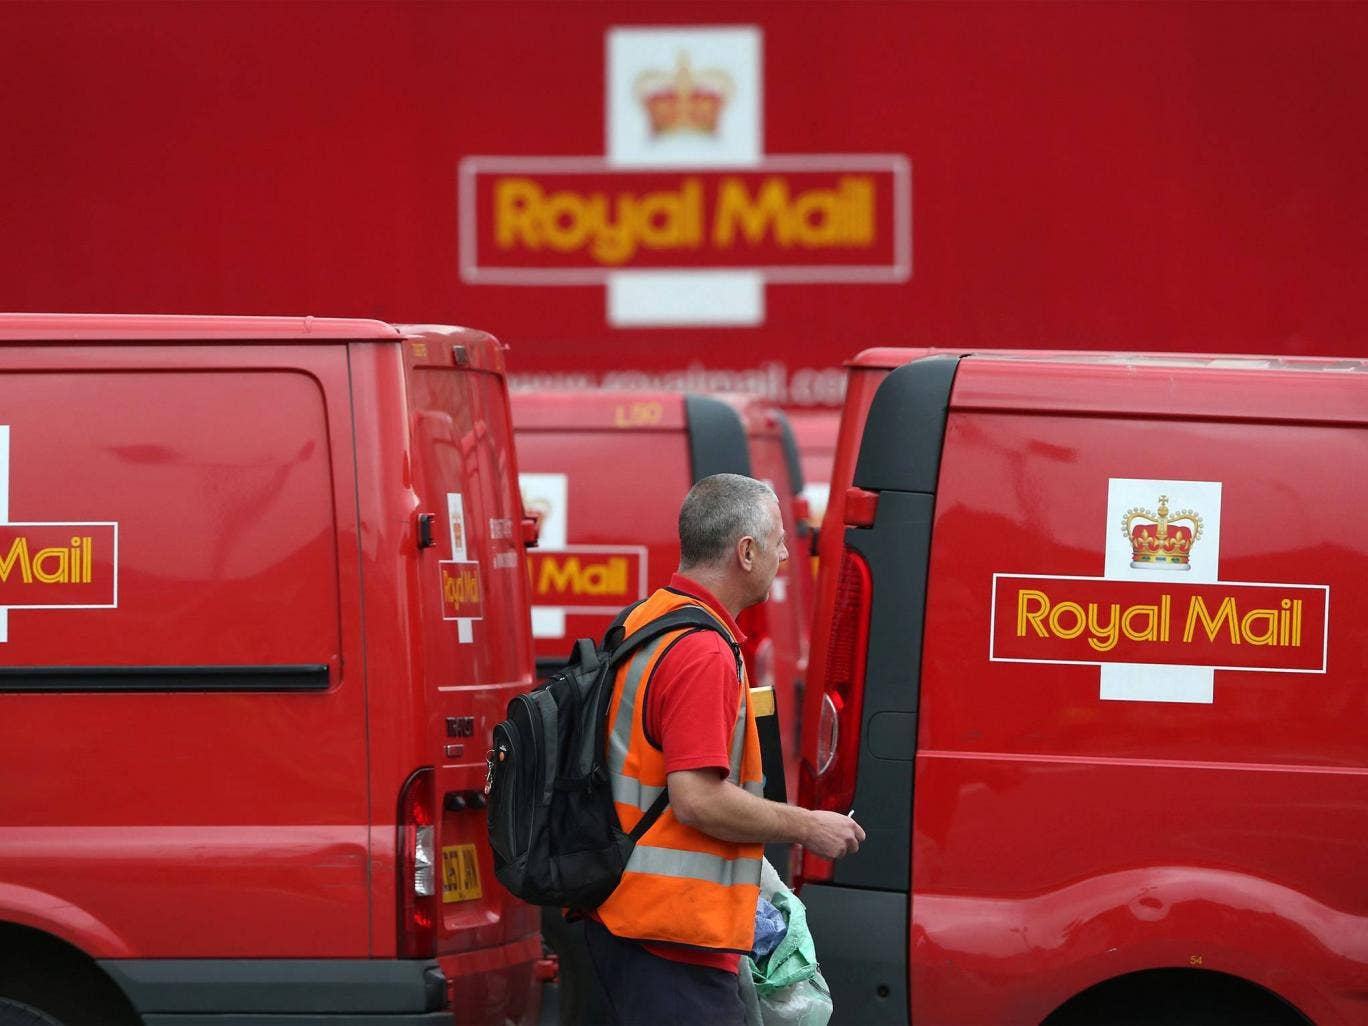 Goldman Sachs priced the Royal Mail at £3.30-a-share when it floated last month